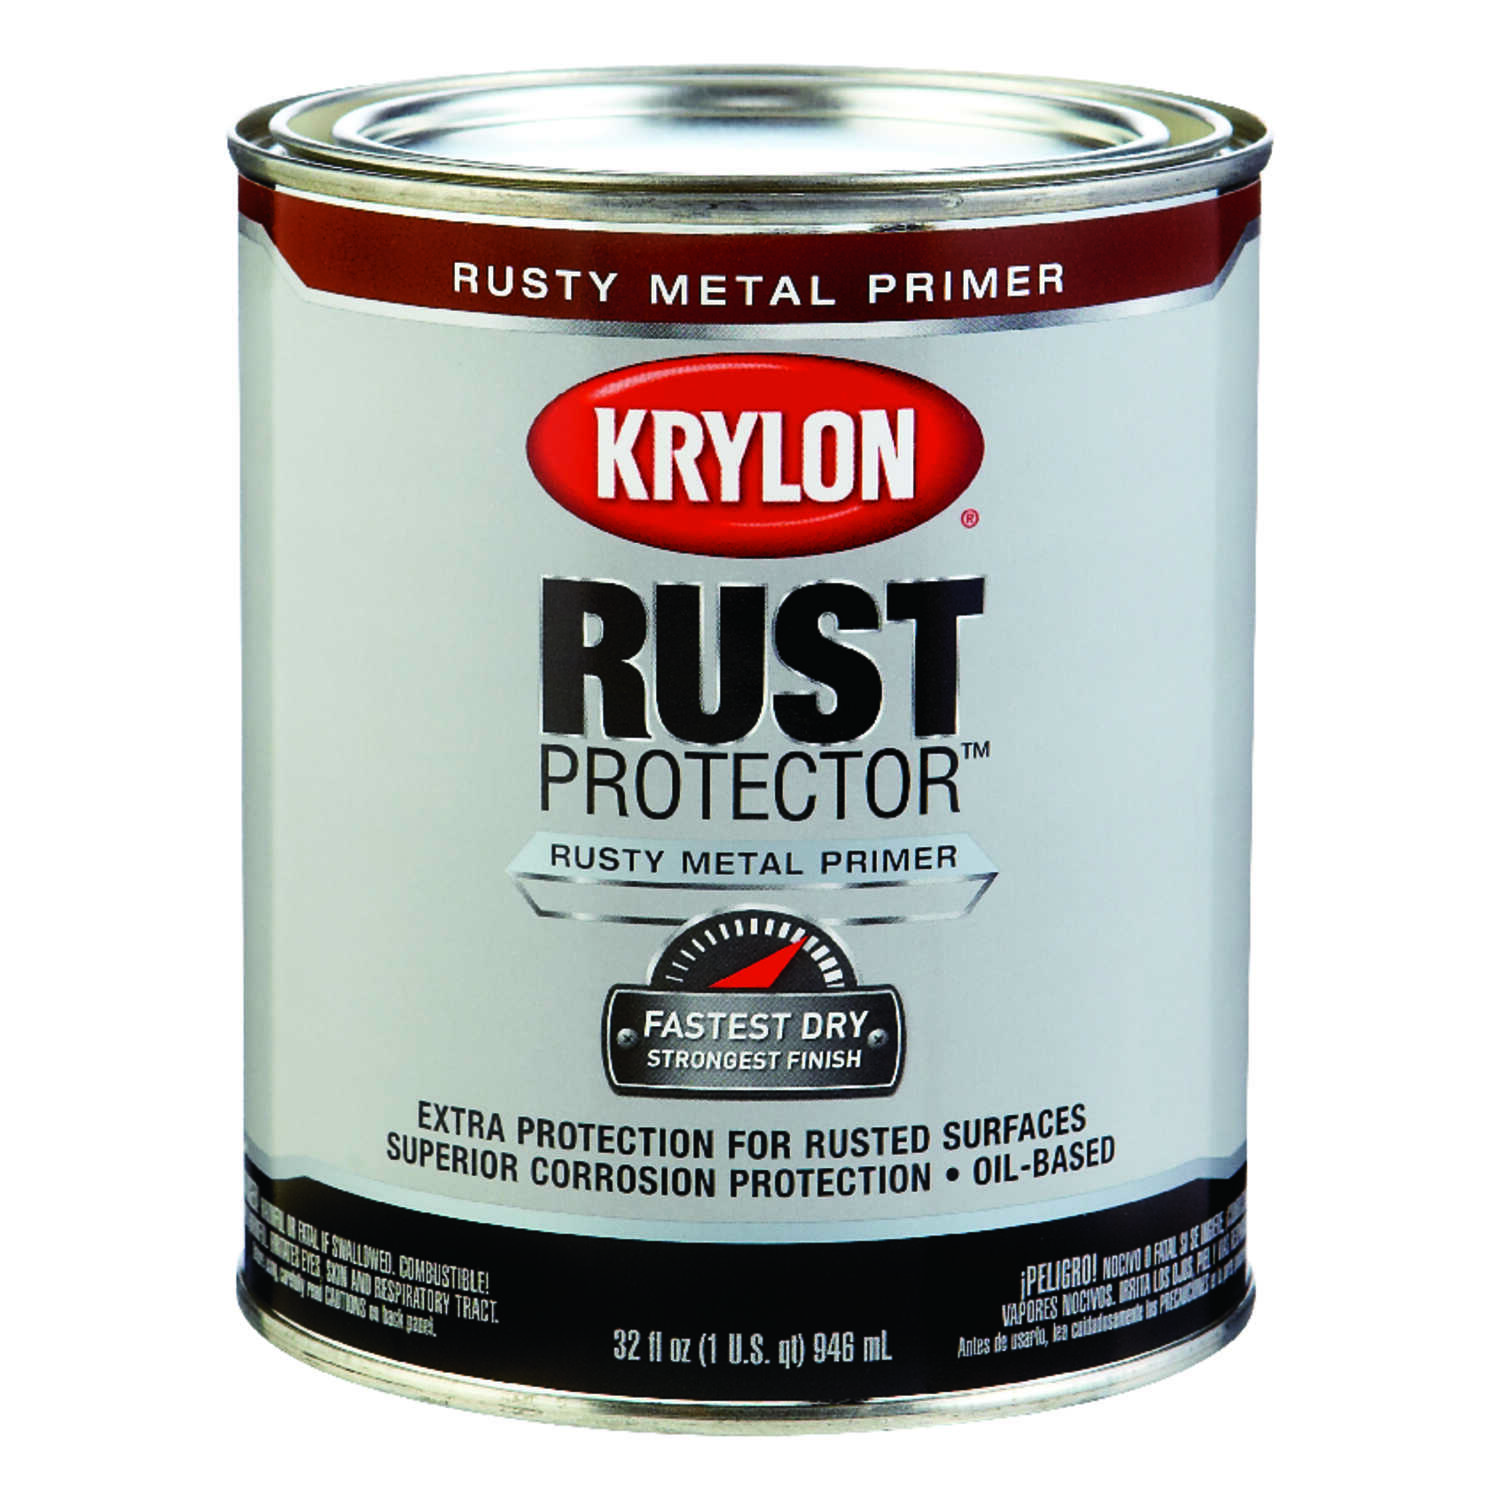 Krylon  Rust Protector  Rusty Red  Alkyd  Primer and Sealer  For Rusty Metals 1 qt. Smooth